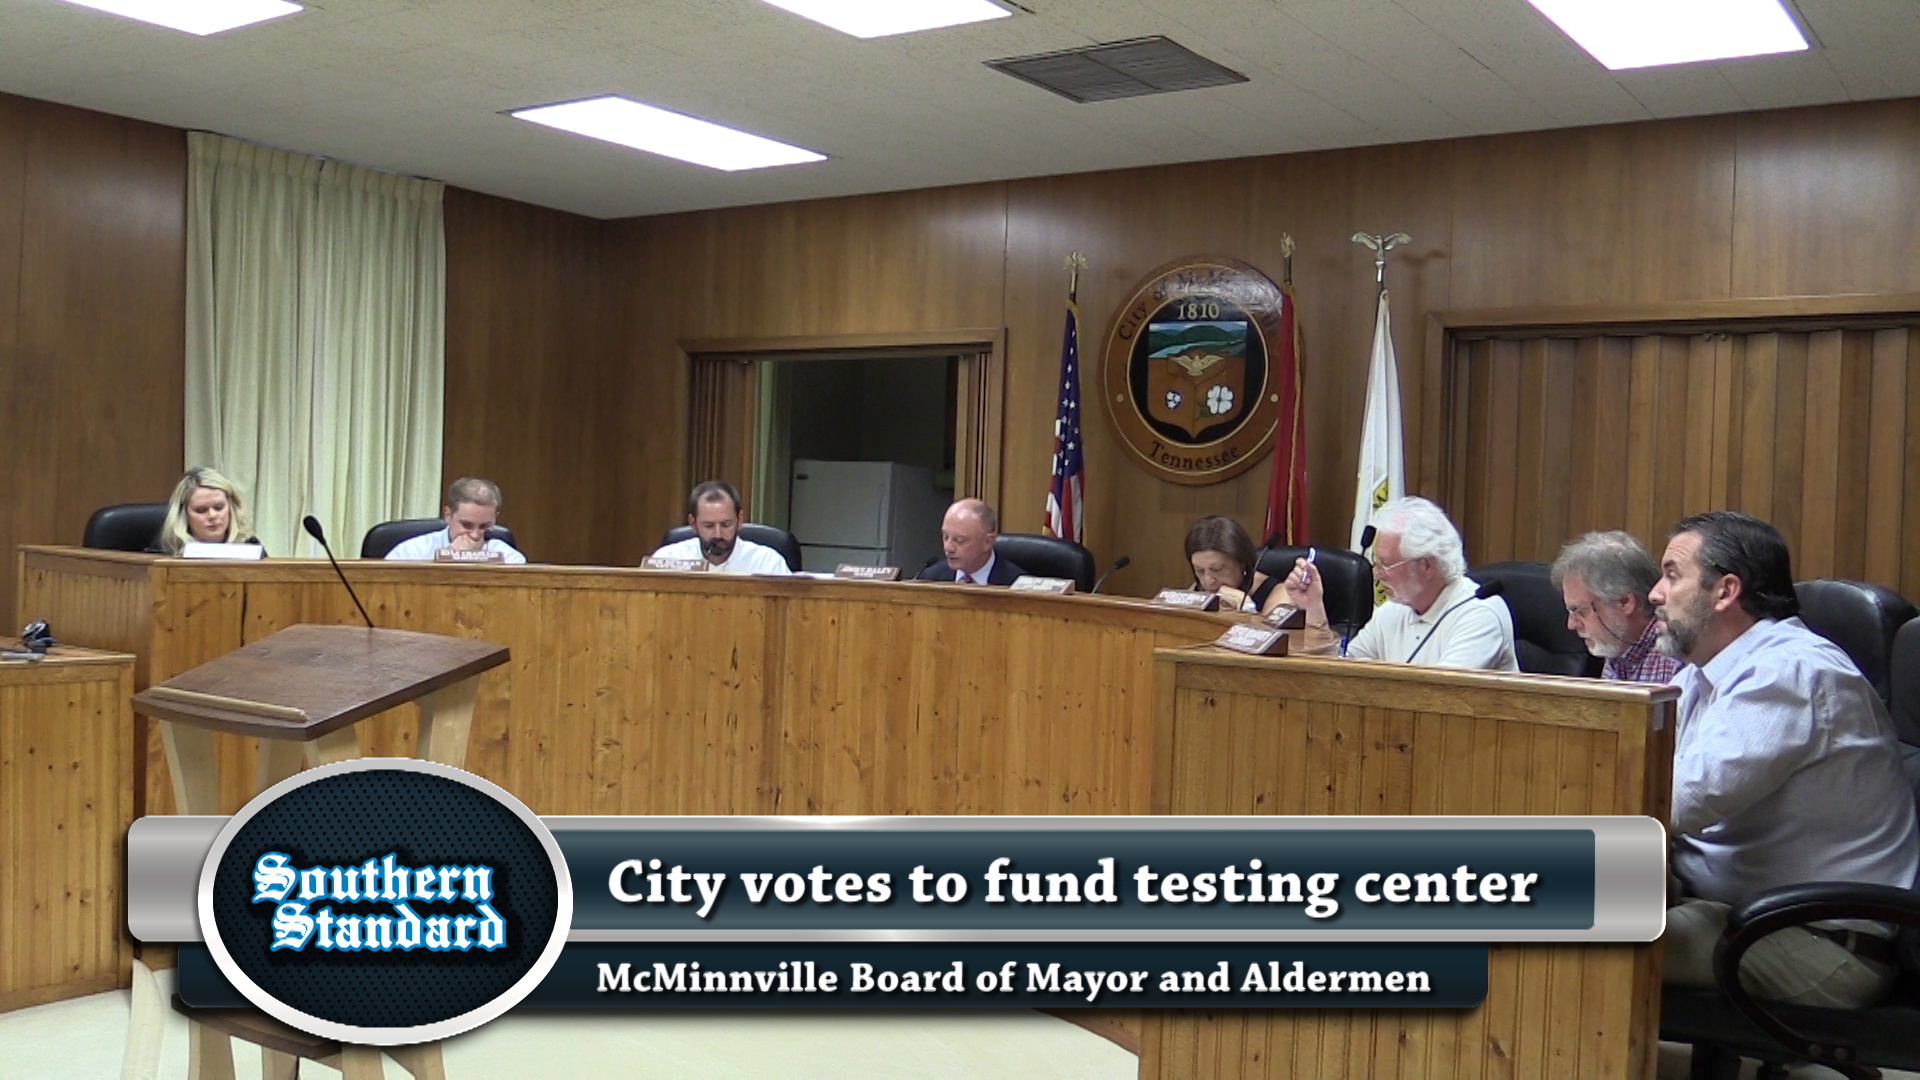 VIDEO - City debates driver testing funding